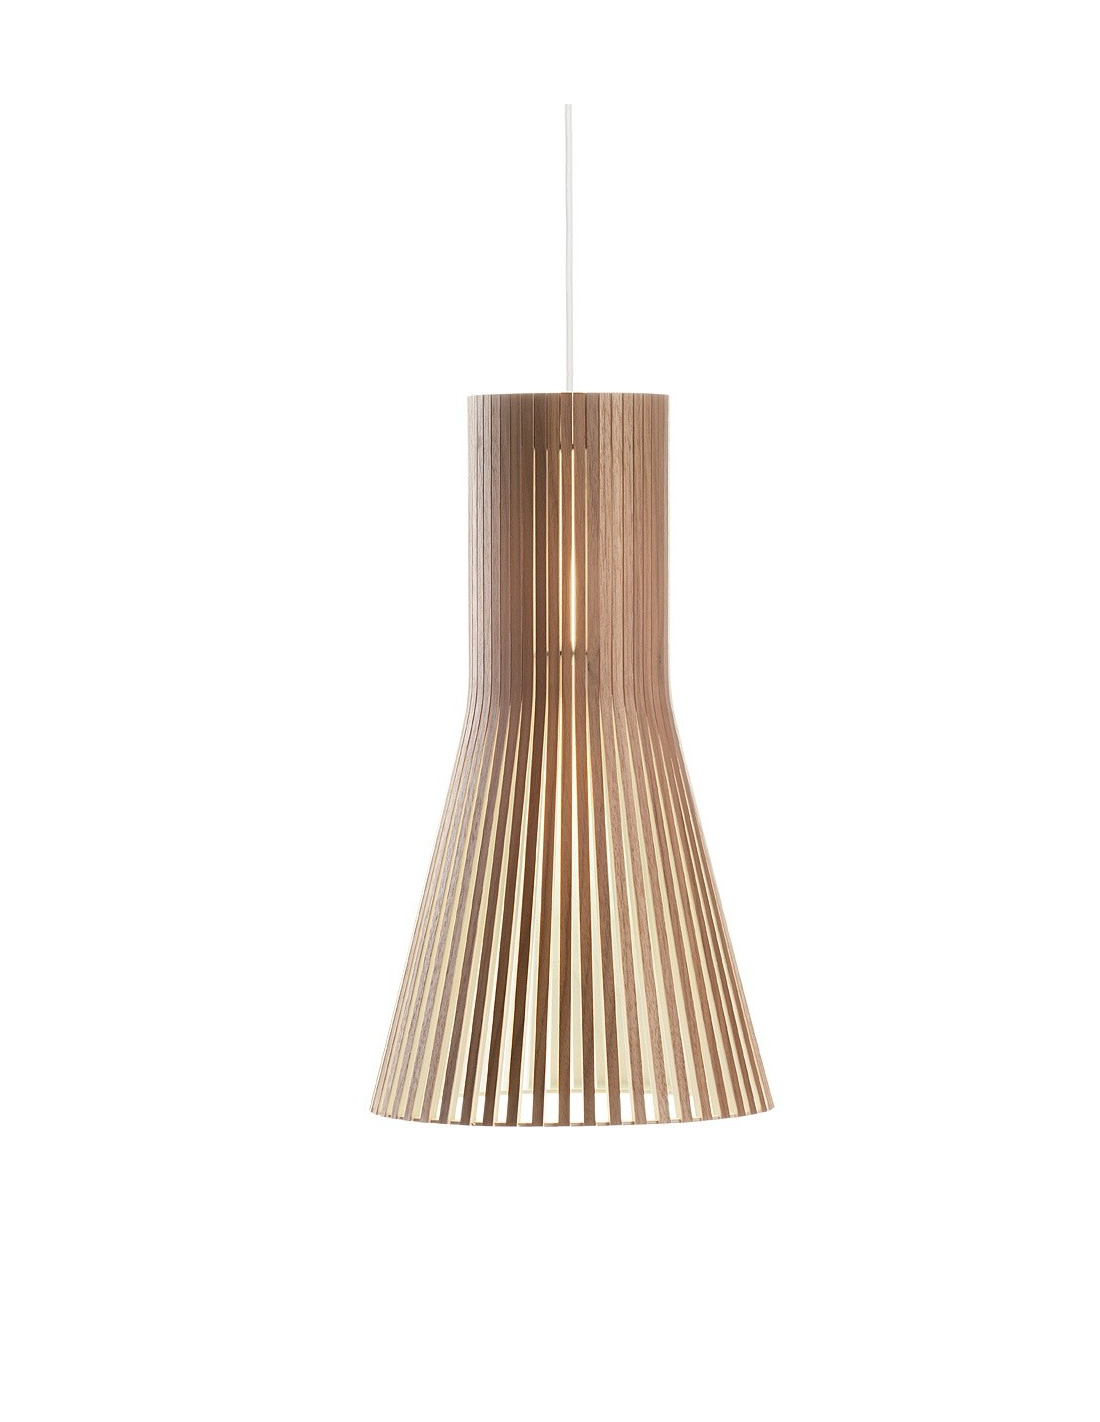 Suspension Au Design Scandinave 4201 En Bois Naturel Otoko